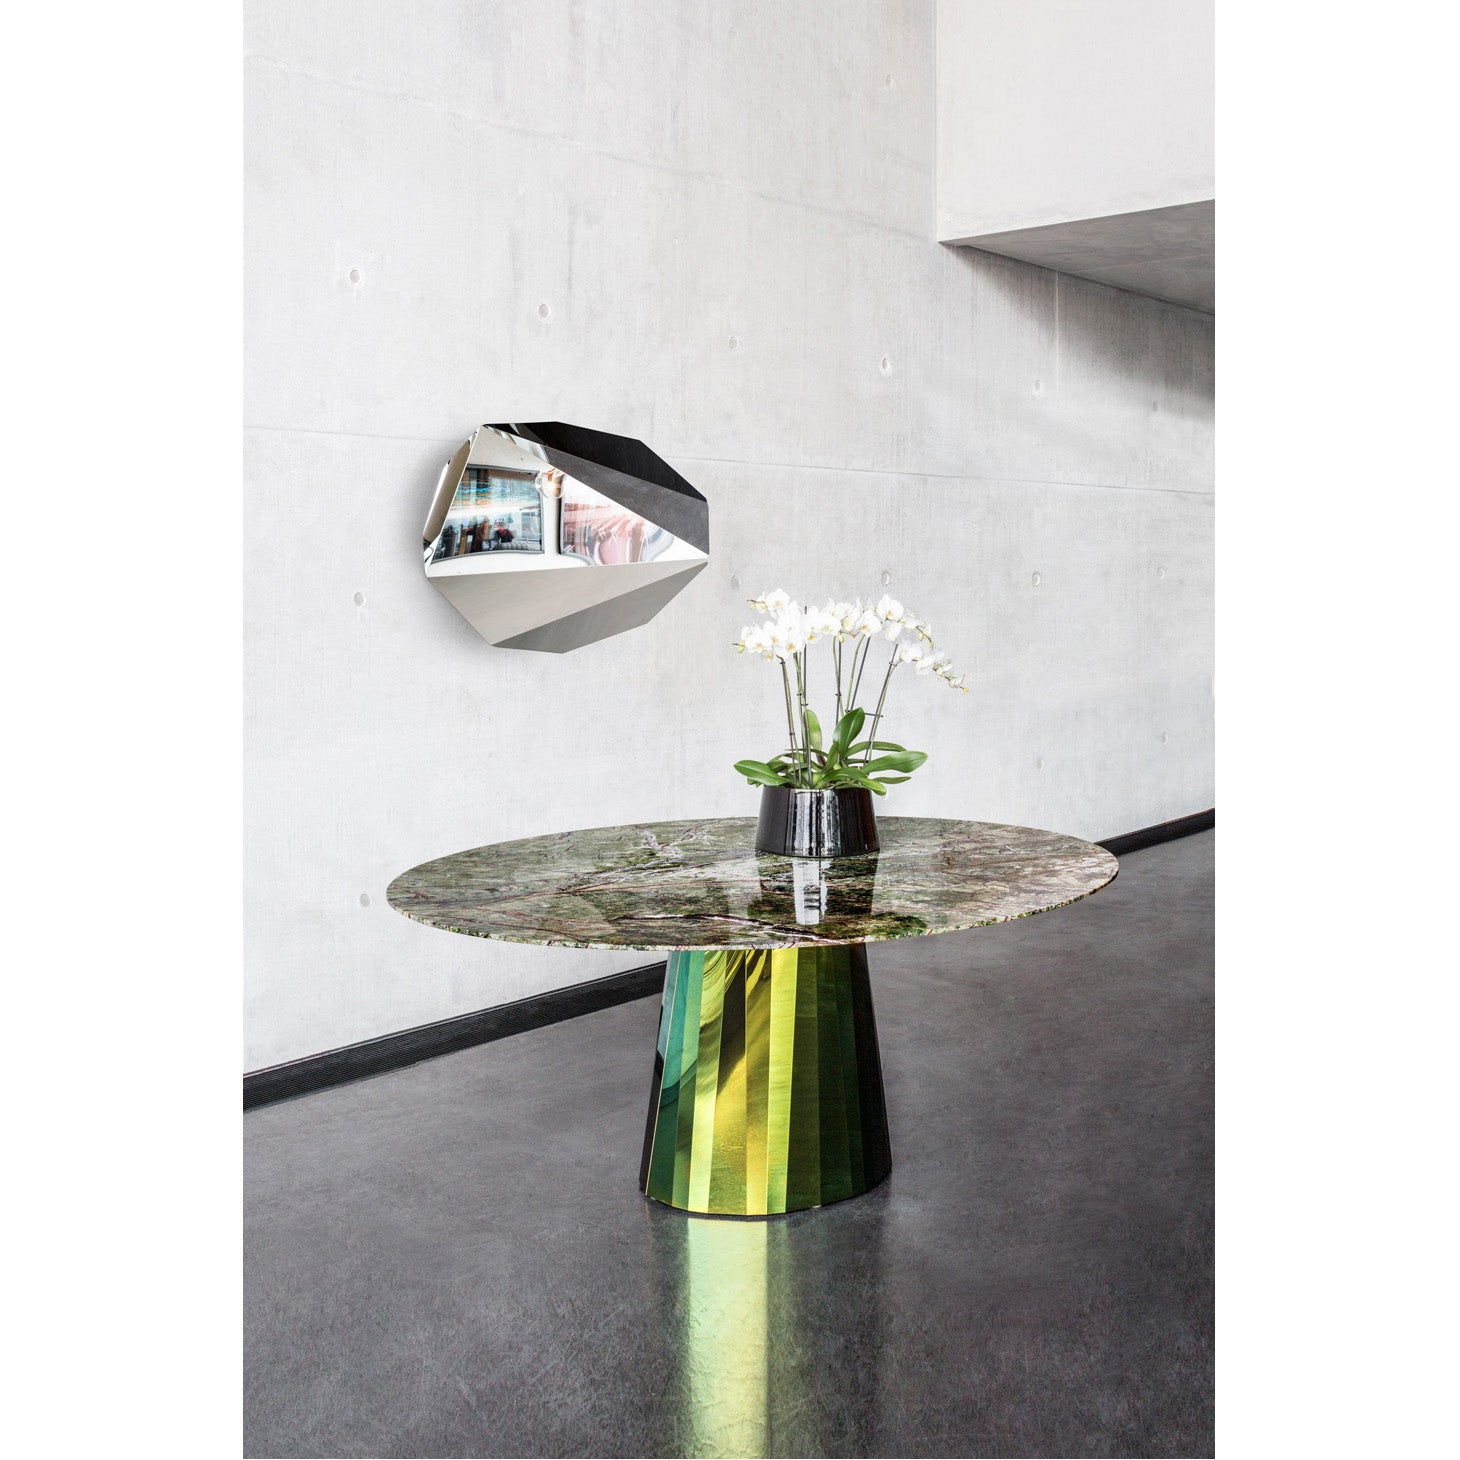 Hassos - Pli Table - Piega Mirror